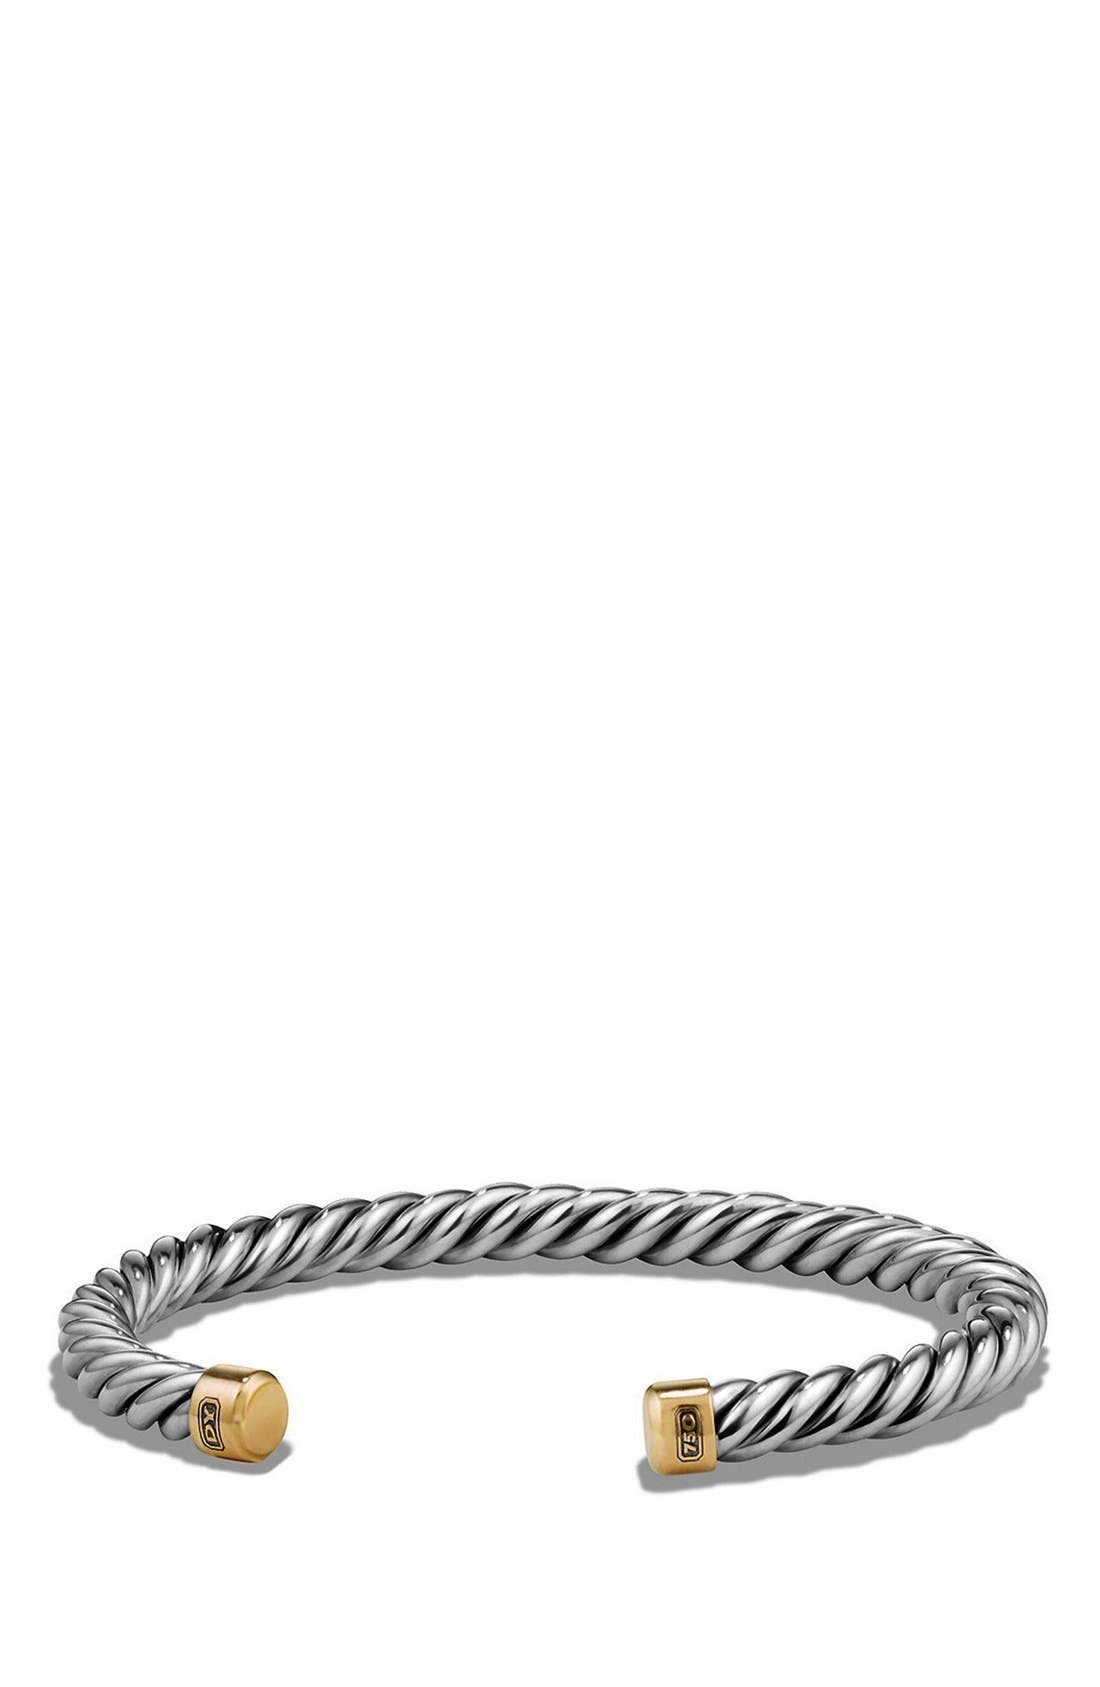 'Cable Classics' Cuff Bracelet with 18K Gold,                             Main thumbnail 1, color,                             Silver/ Gold